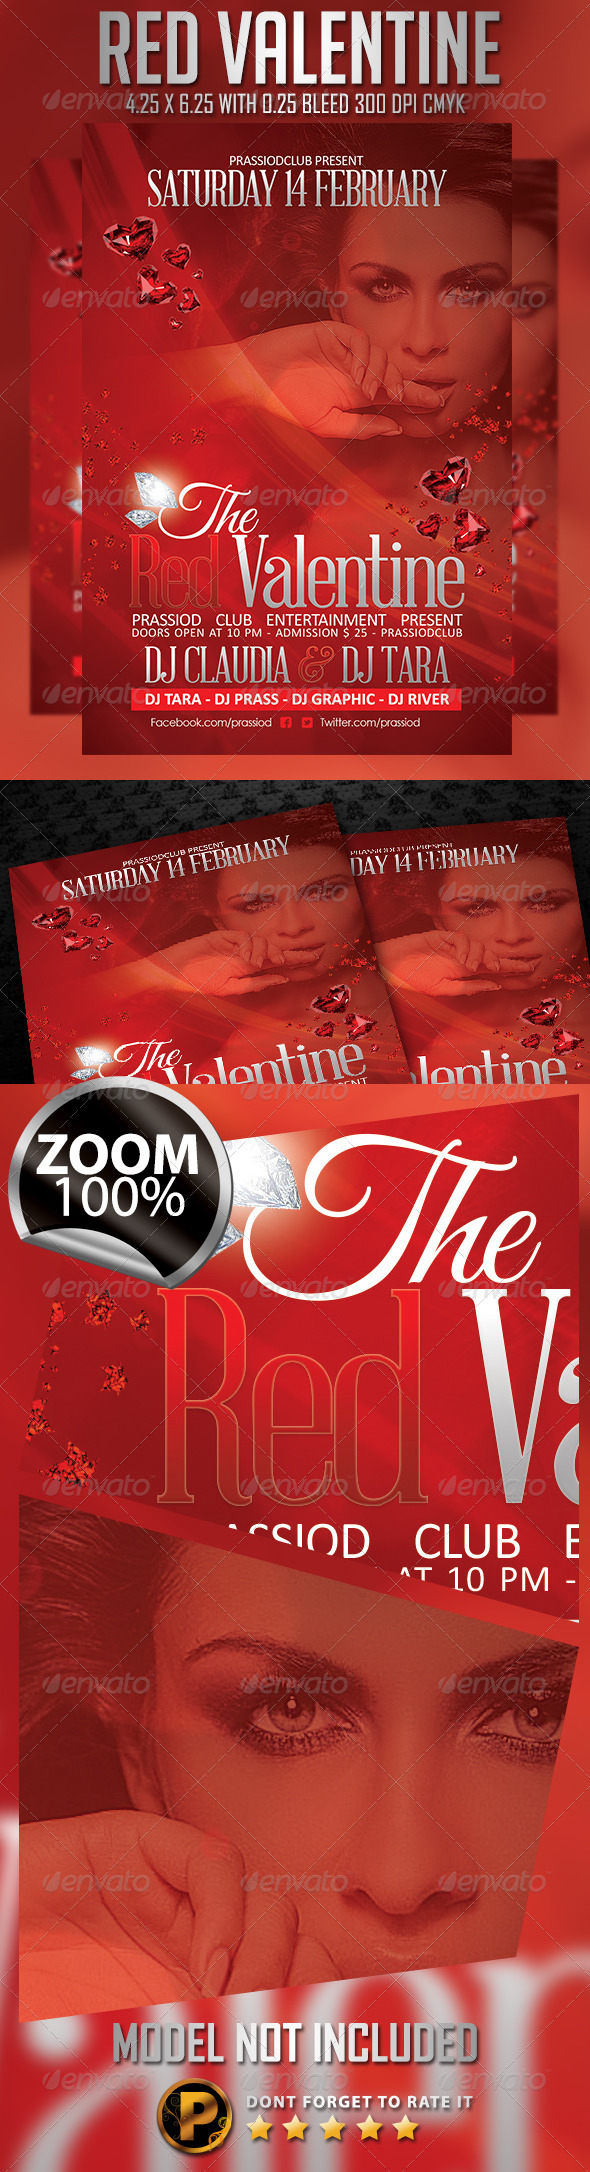 Red Valentine Flyer Template - Clubs & Parties Events